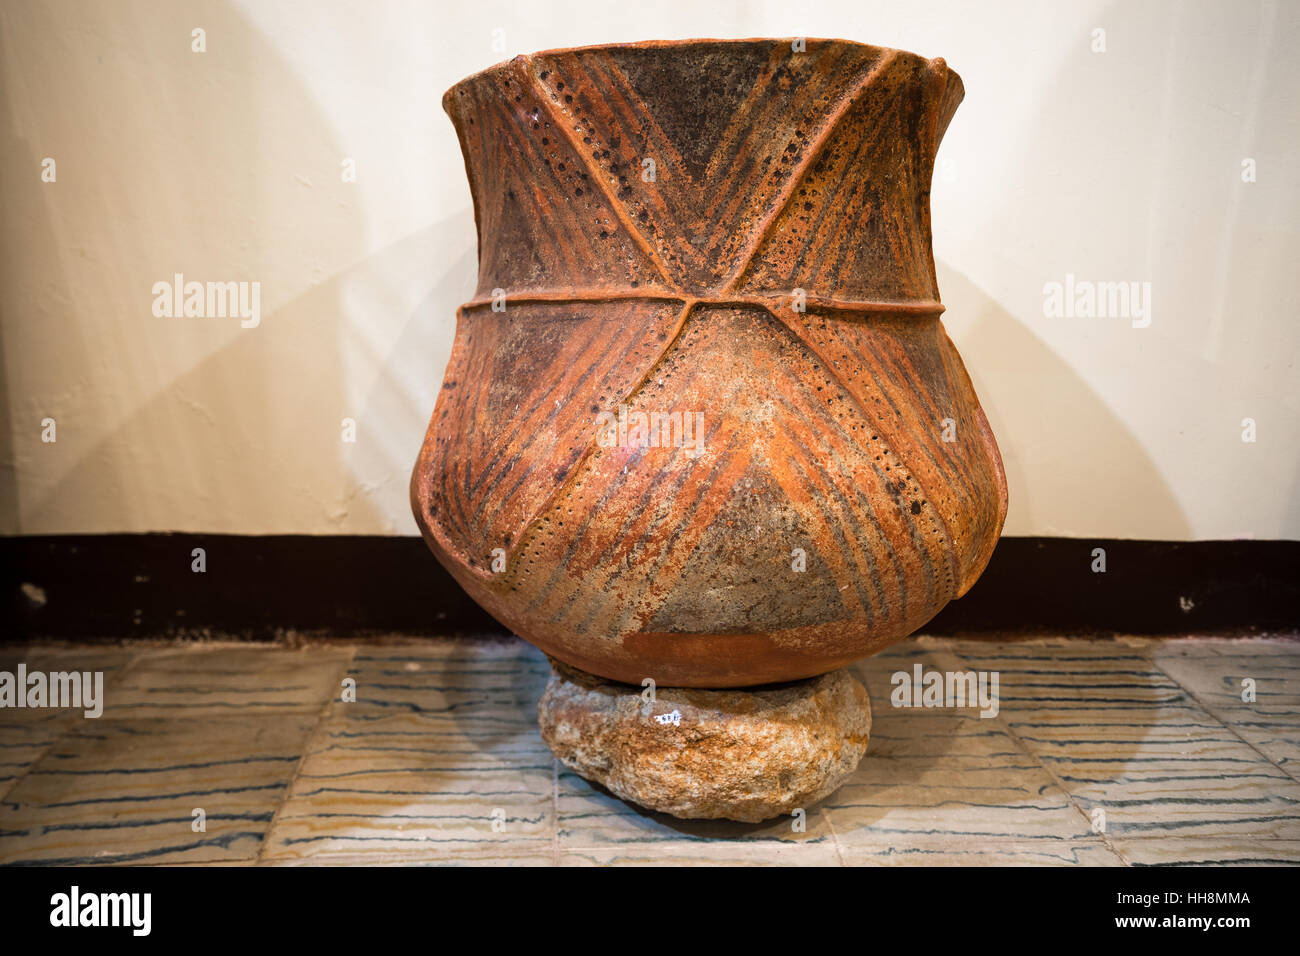 Ceramic Burial Urn from the pre-colombian culture at Tierradentro Colombia - Stock Image